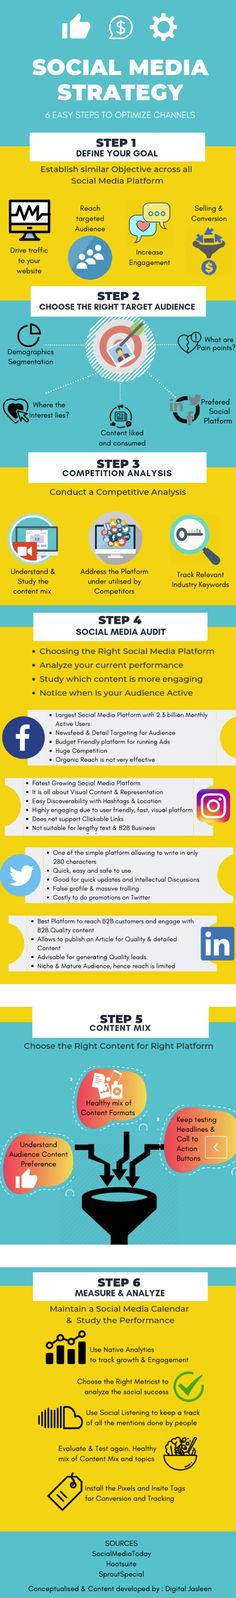 6 Steps to Optimise Your Social Media Strategy & Improve Results [Infographic]